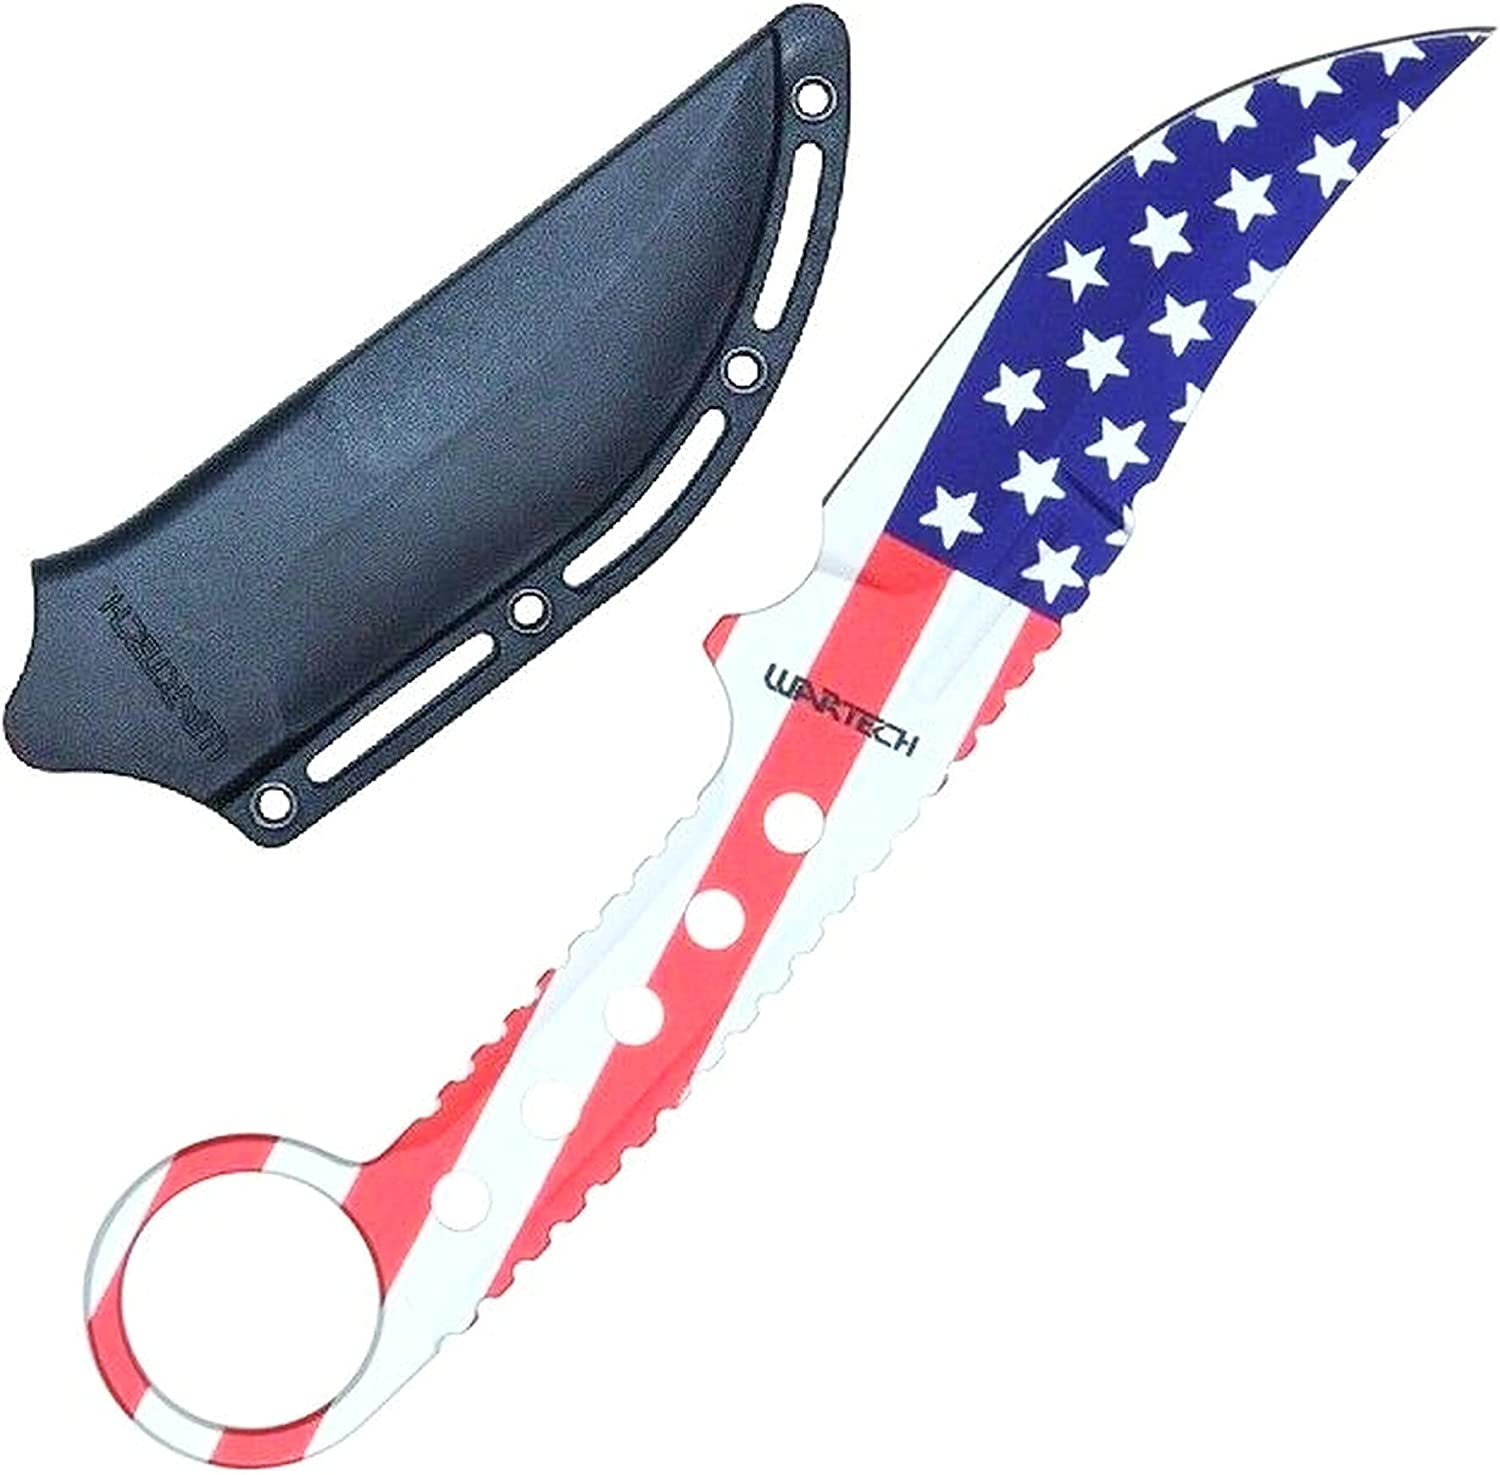 New Pro Tactical Knife Ranking TOP8 USA American Point Max 49% OFF Slim Blade Clip Flag +